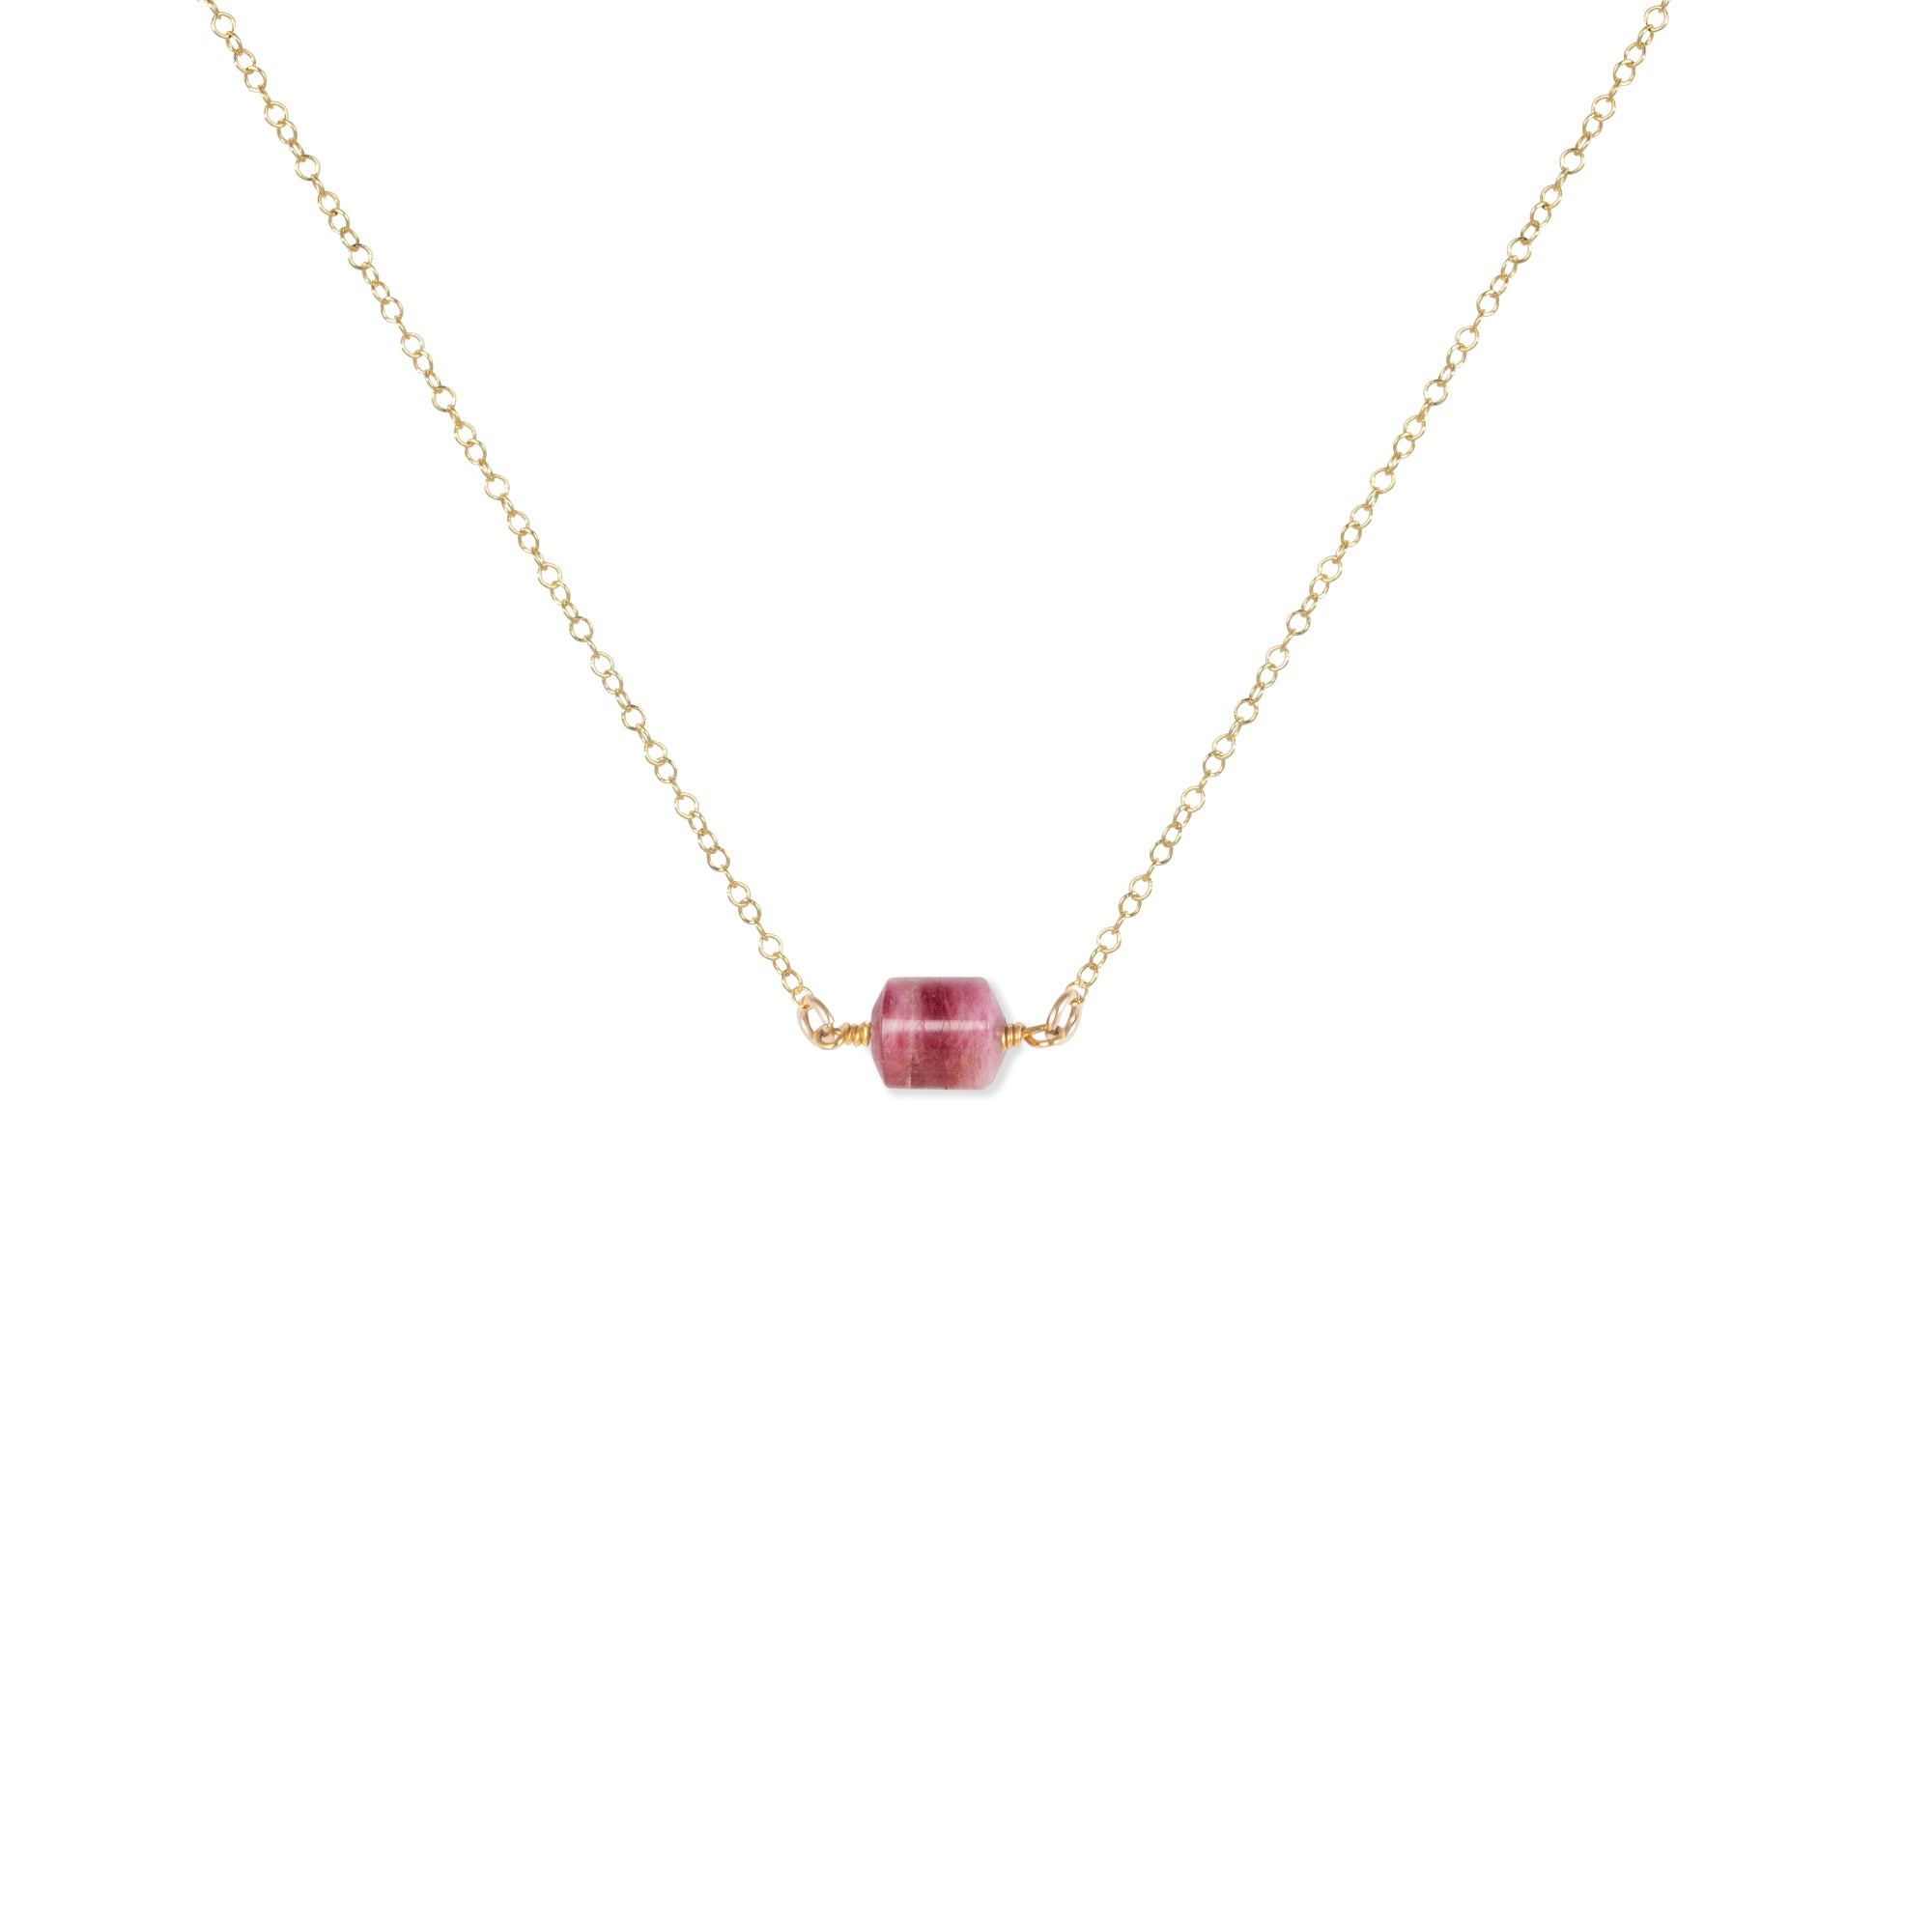 Close-up of Rubellite Tourmaline and Gold Necklace 'You Rock' on White Background Product Photo by Asha Blooms